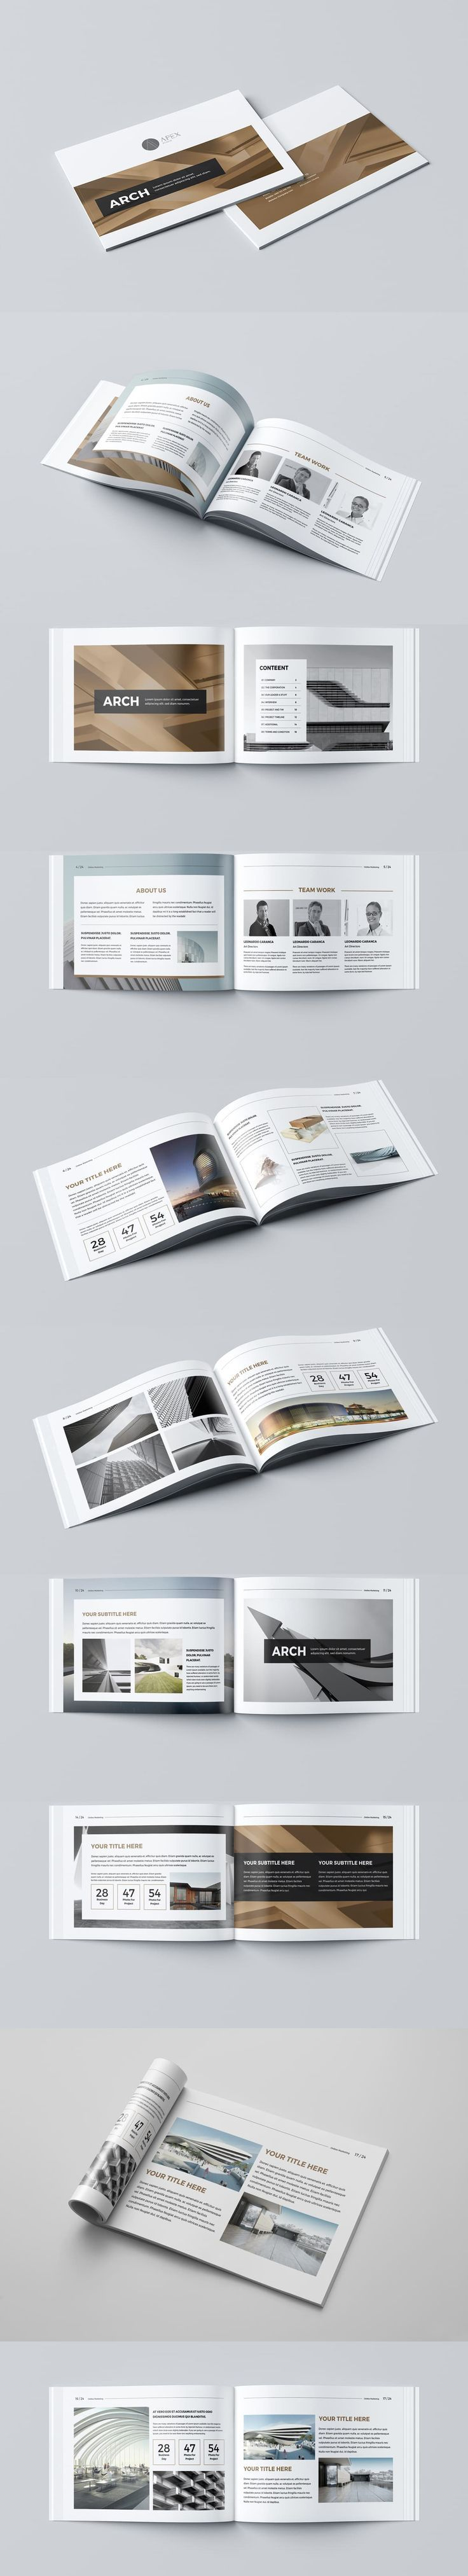 Best Images About Design Layout Pinterest New Modern Architecture